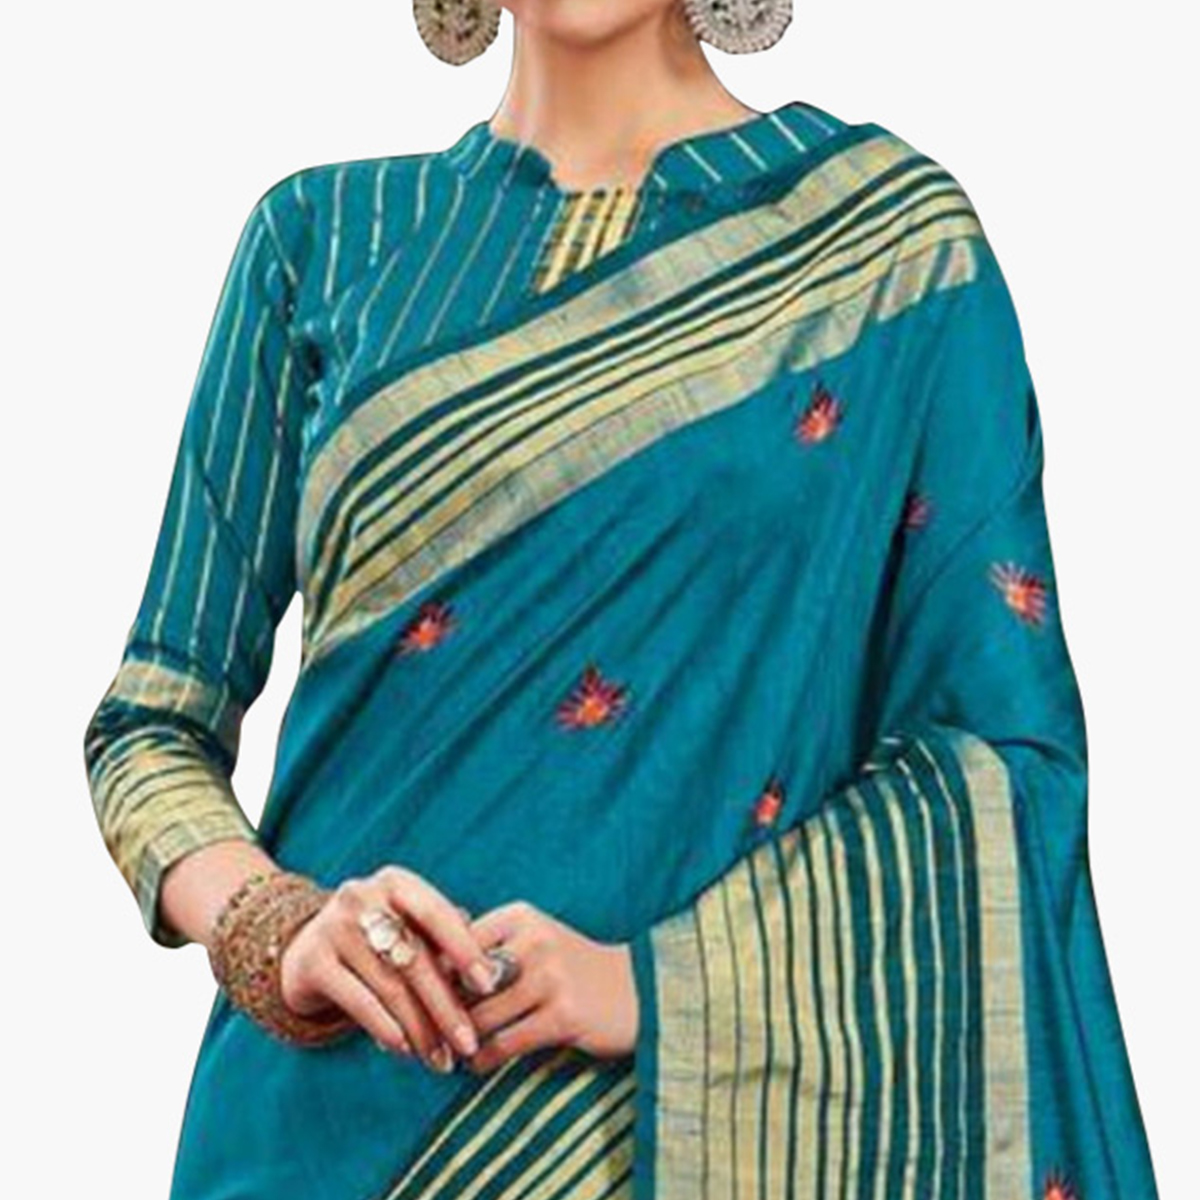 Desirable Sky Blue Colored Festive Wear Embroidered Saree